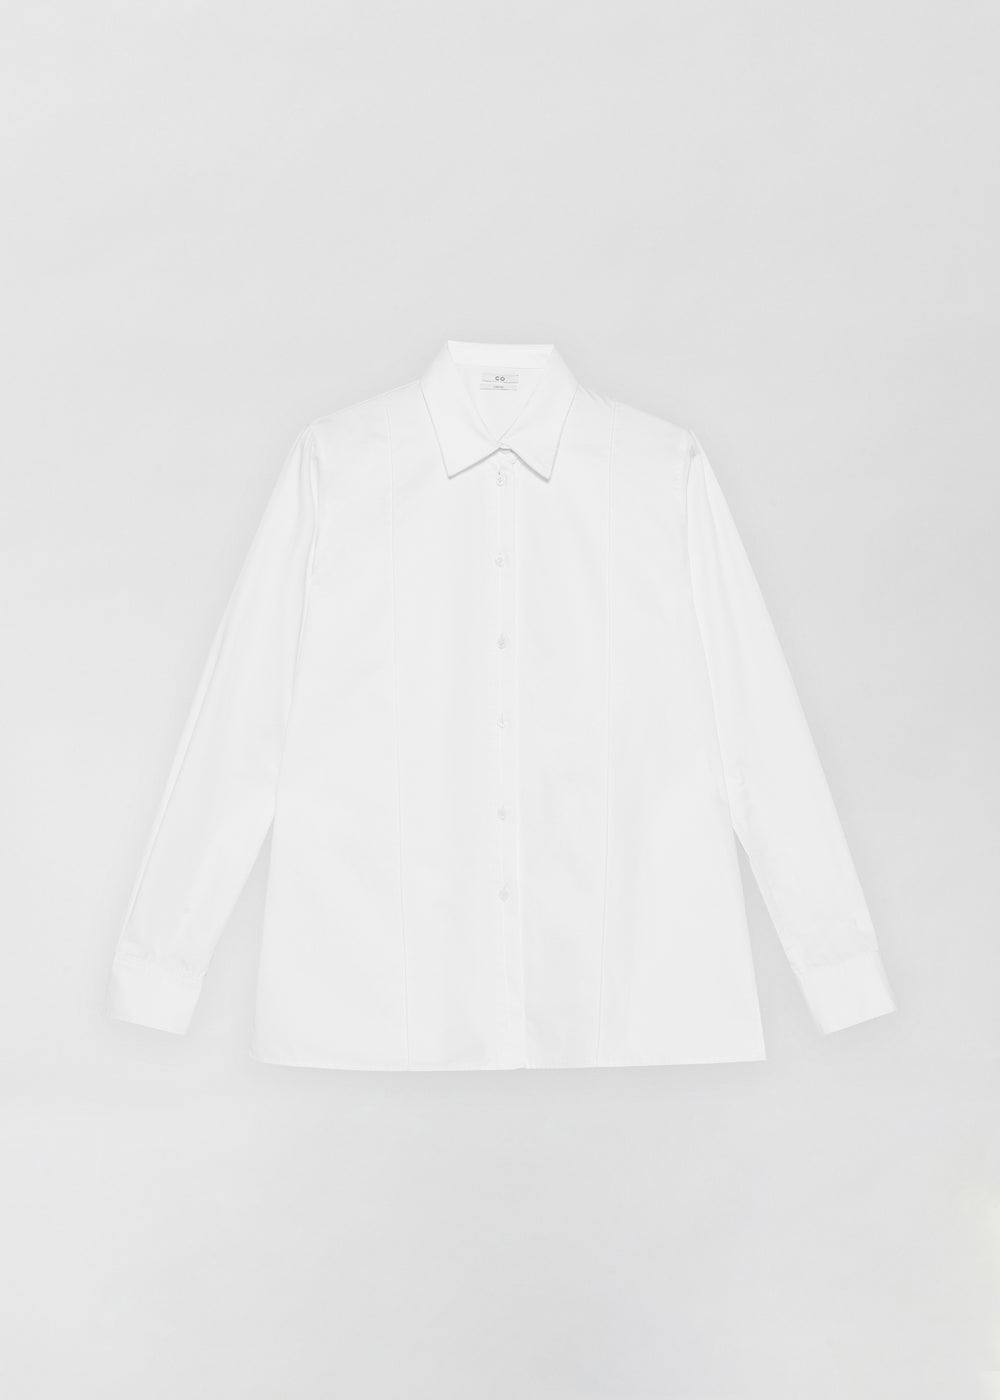 Tucked Placket Button Down Shirt - White - CO